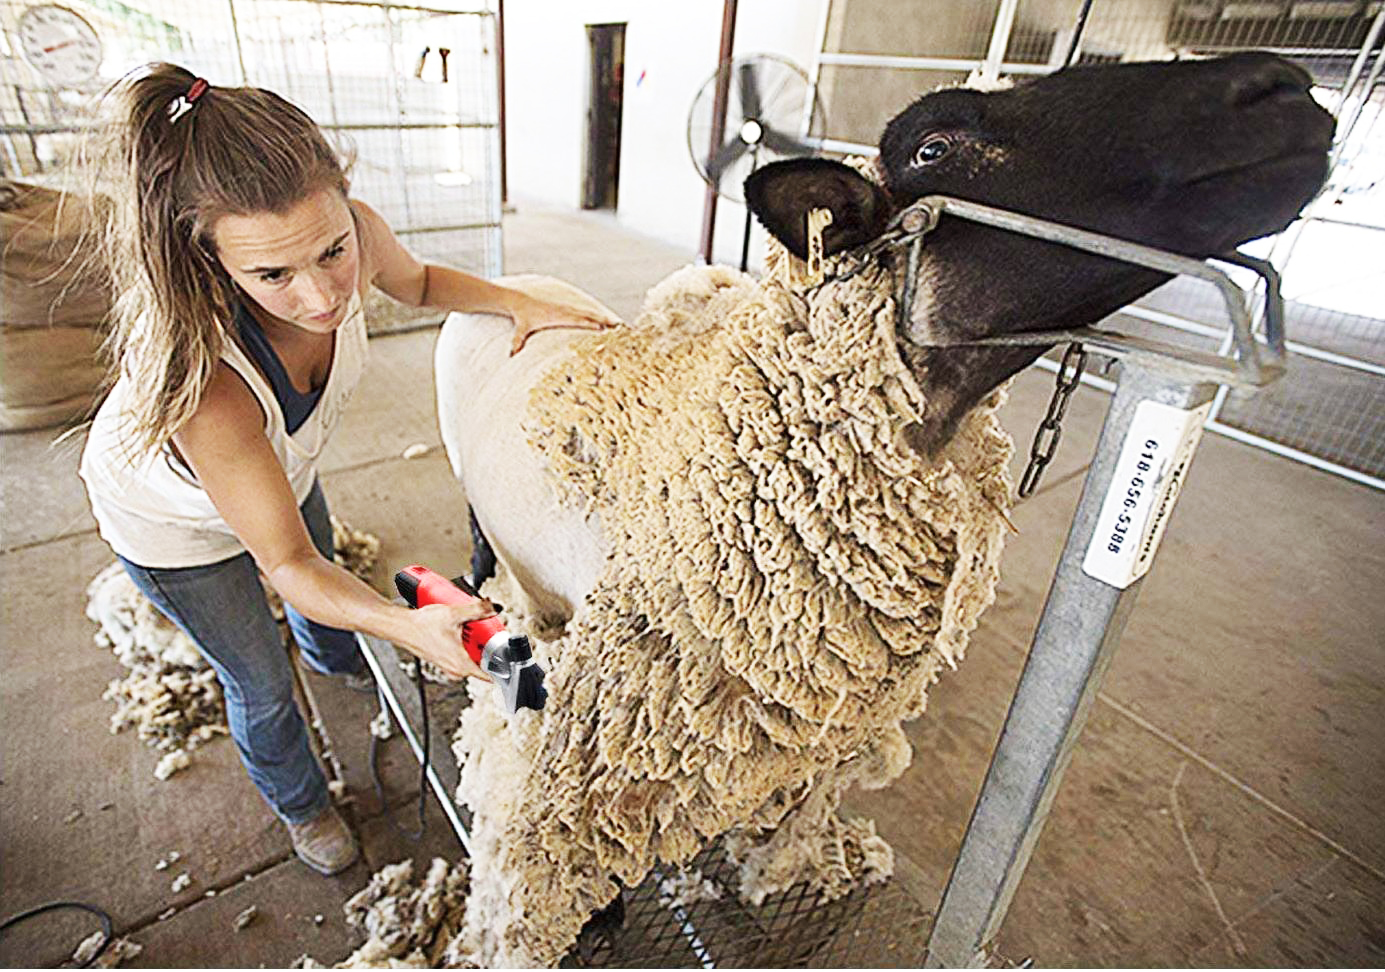 Quality Hand Shears for trimming// dagging// shearing// clipping Sheep Goats Cows